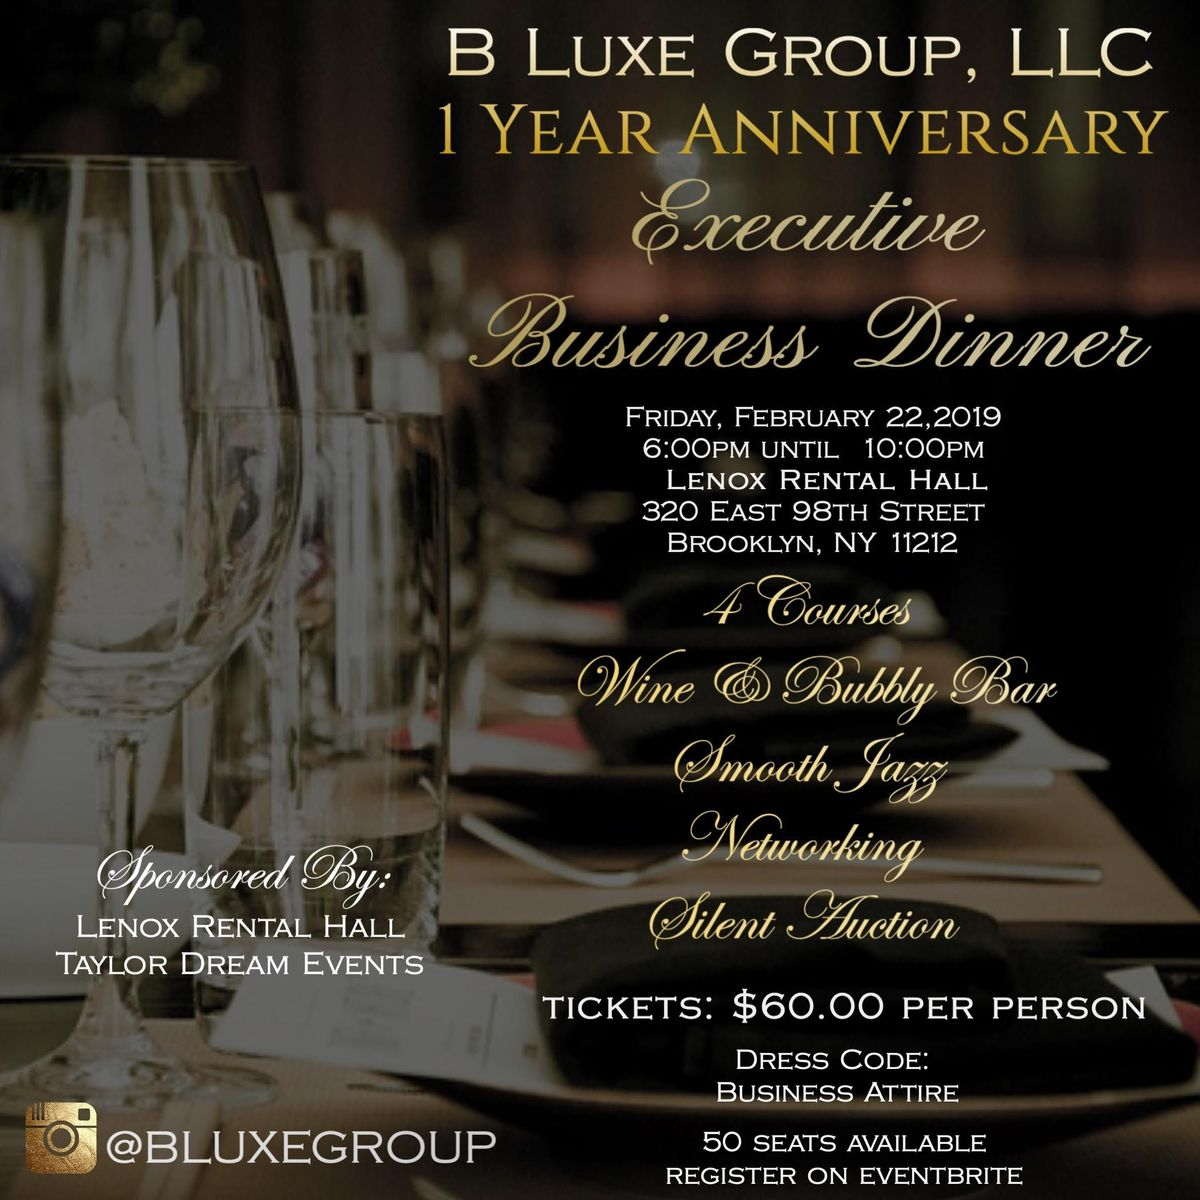 Executive Business Dinner- B Luxe 1 Year Anniversary